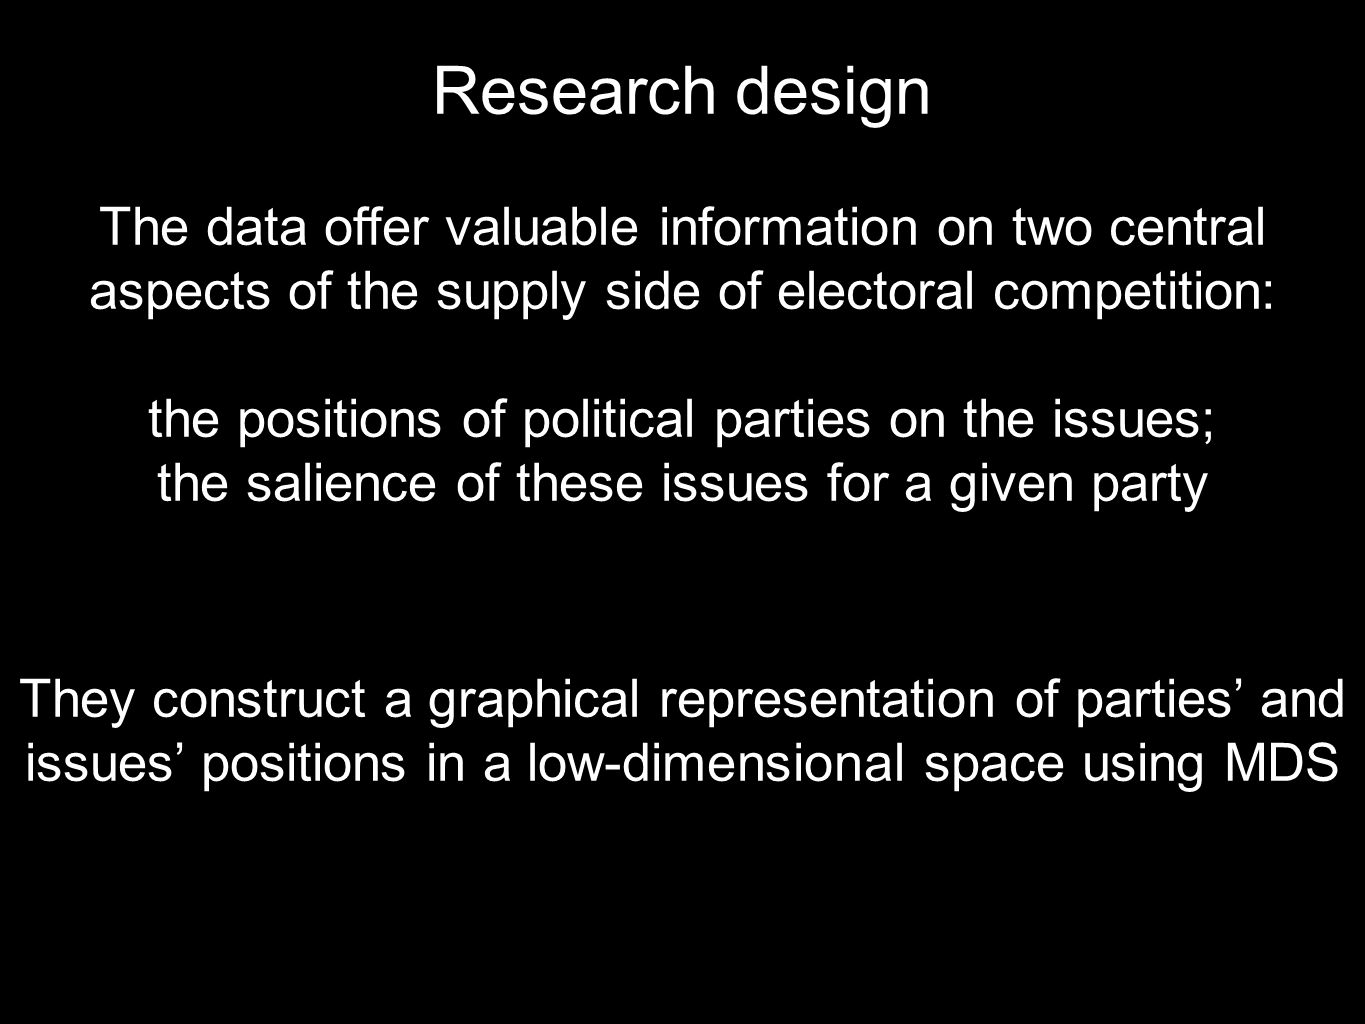 Research design The data offer valuable information on two central aspects of the supply side of electoral competition: